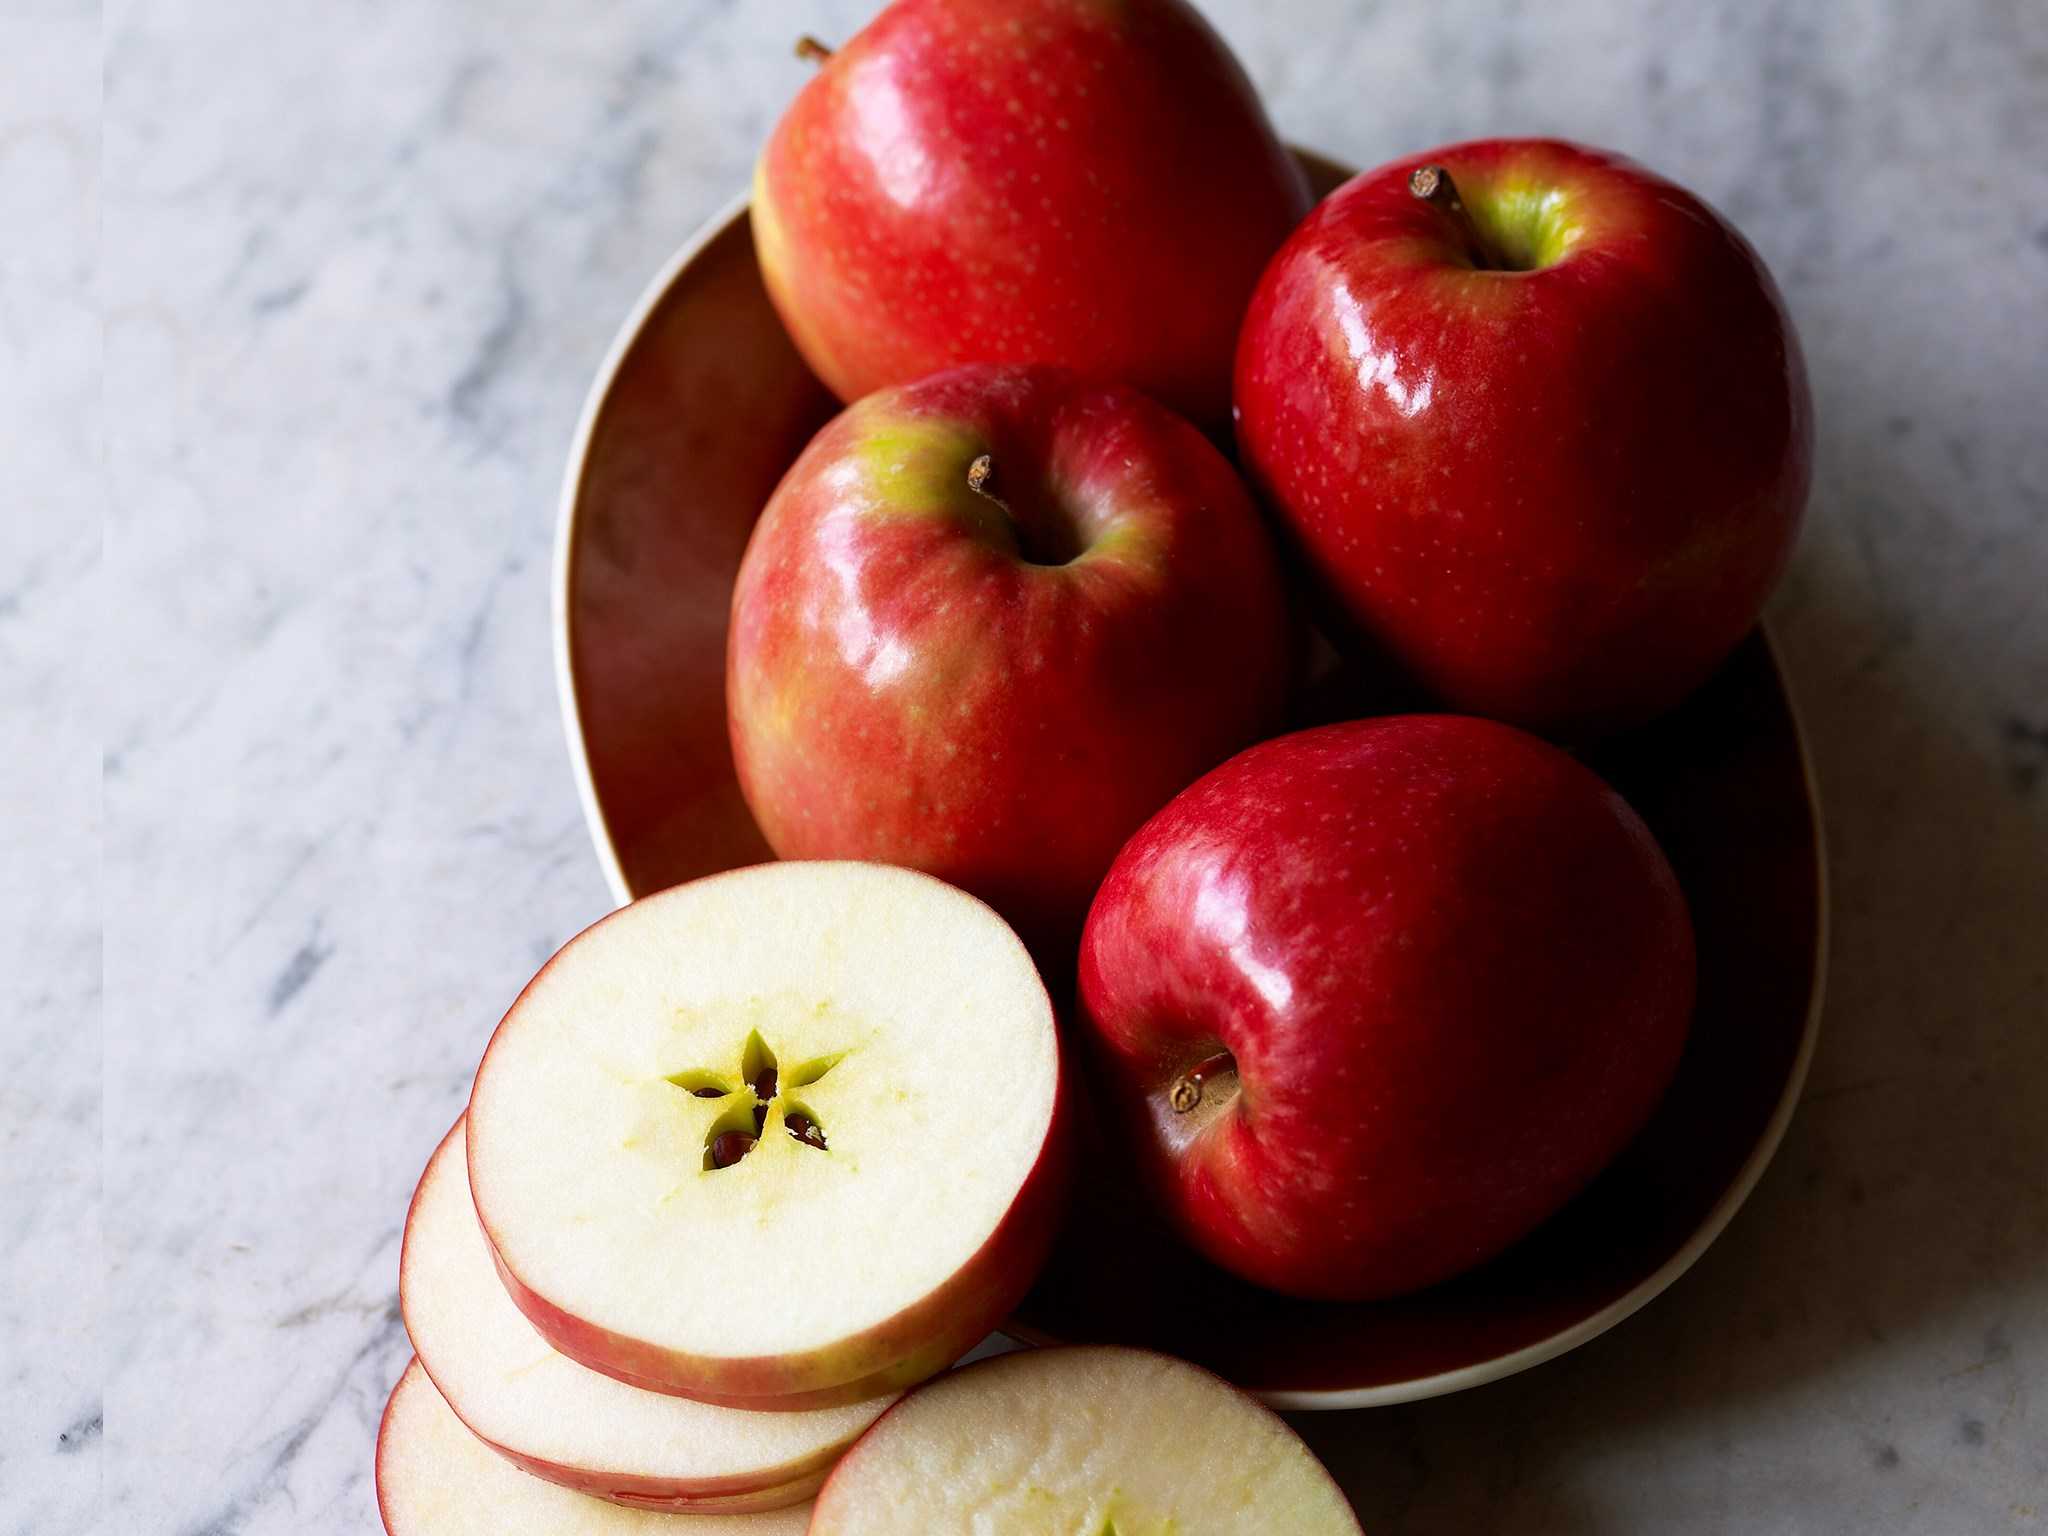 **[APPLES](http://www.foodtolove.com.au/recipes/collections/24-amazing-ways-with-apples)**